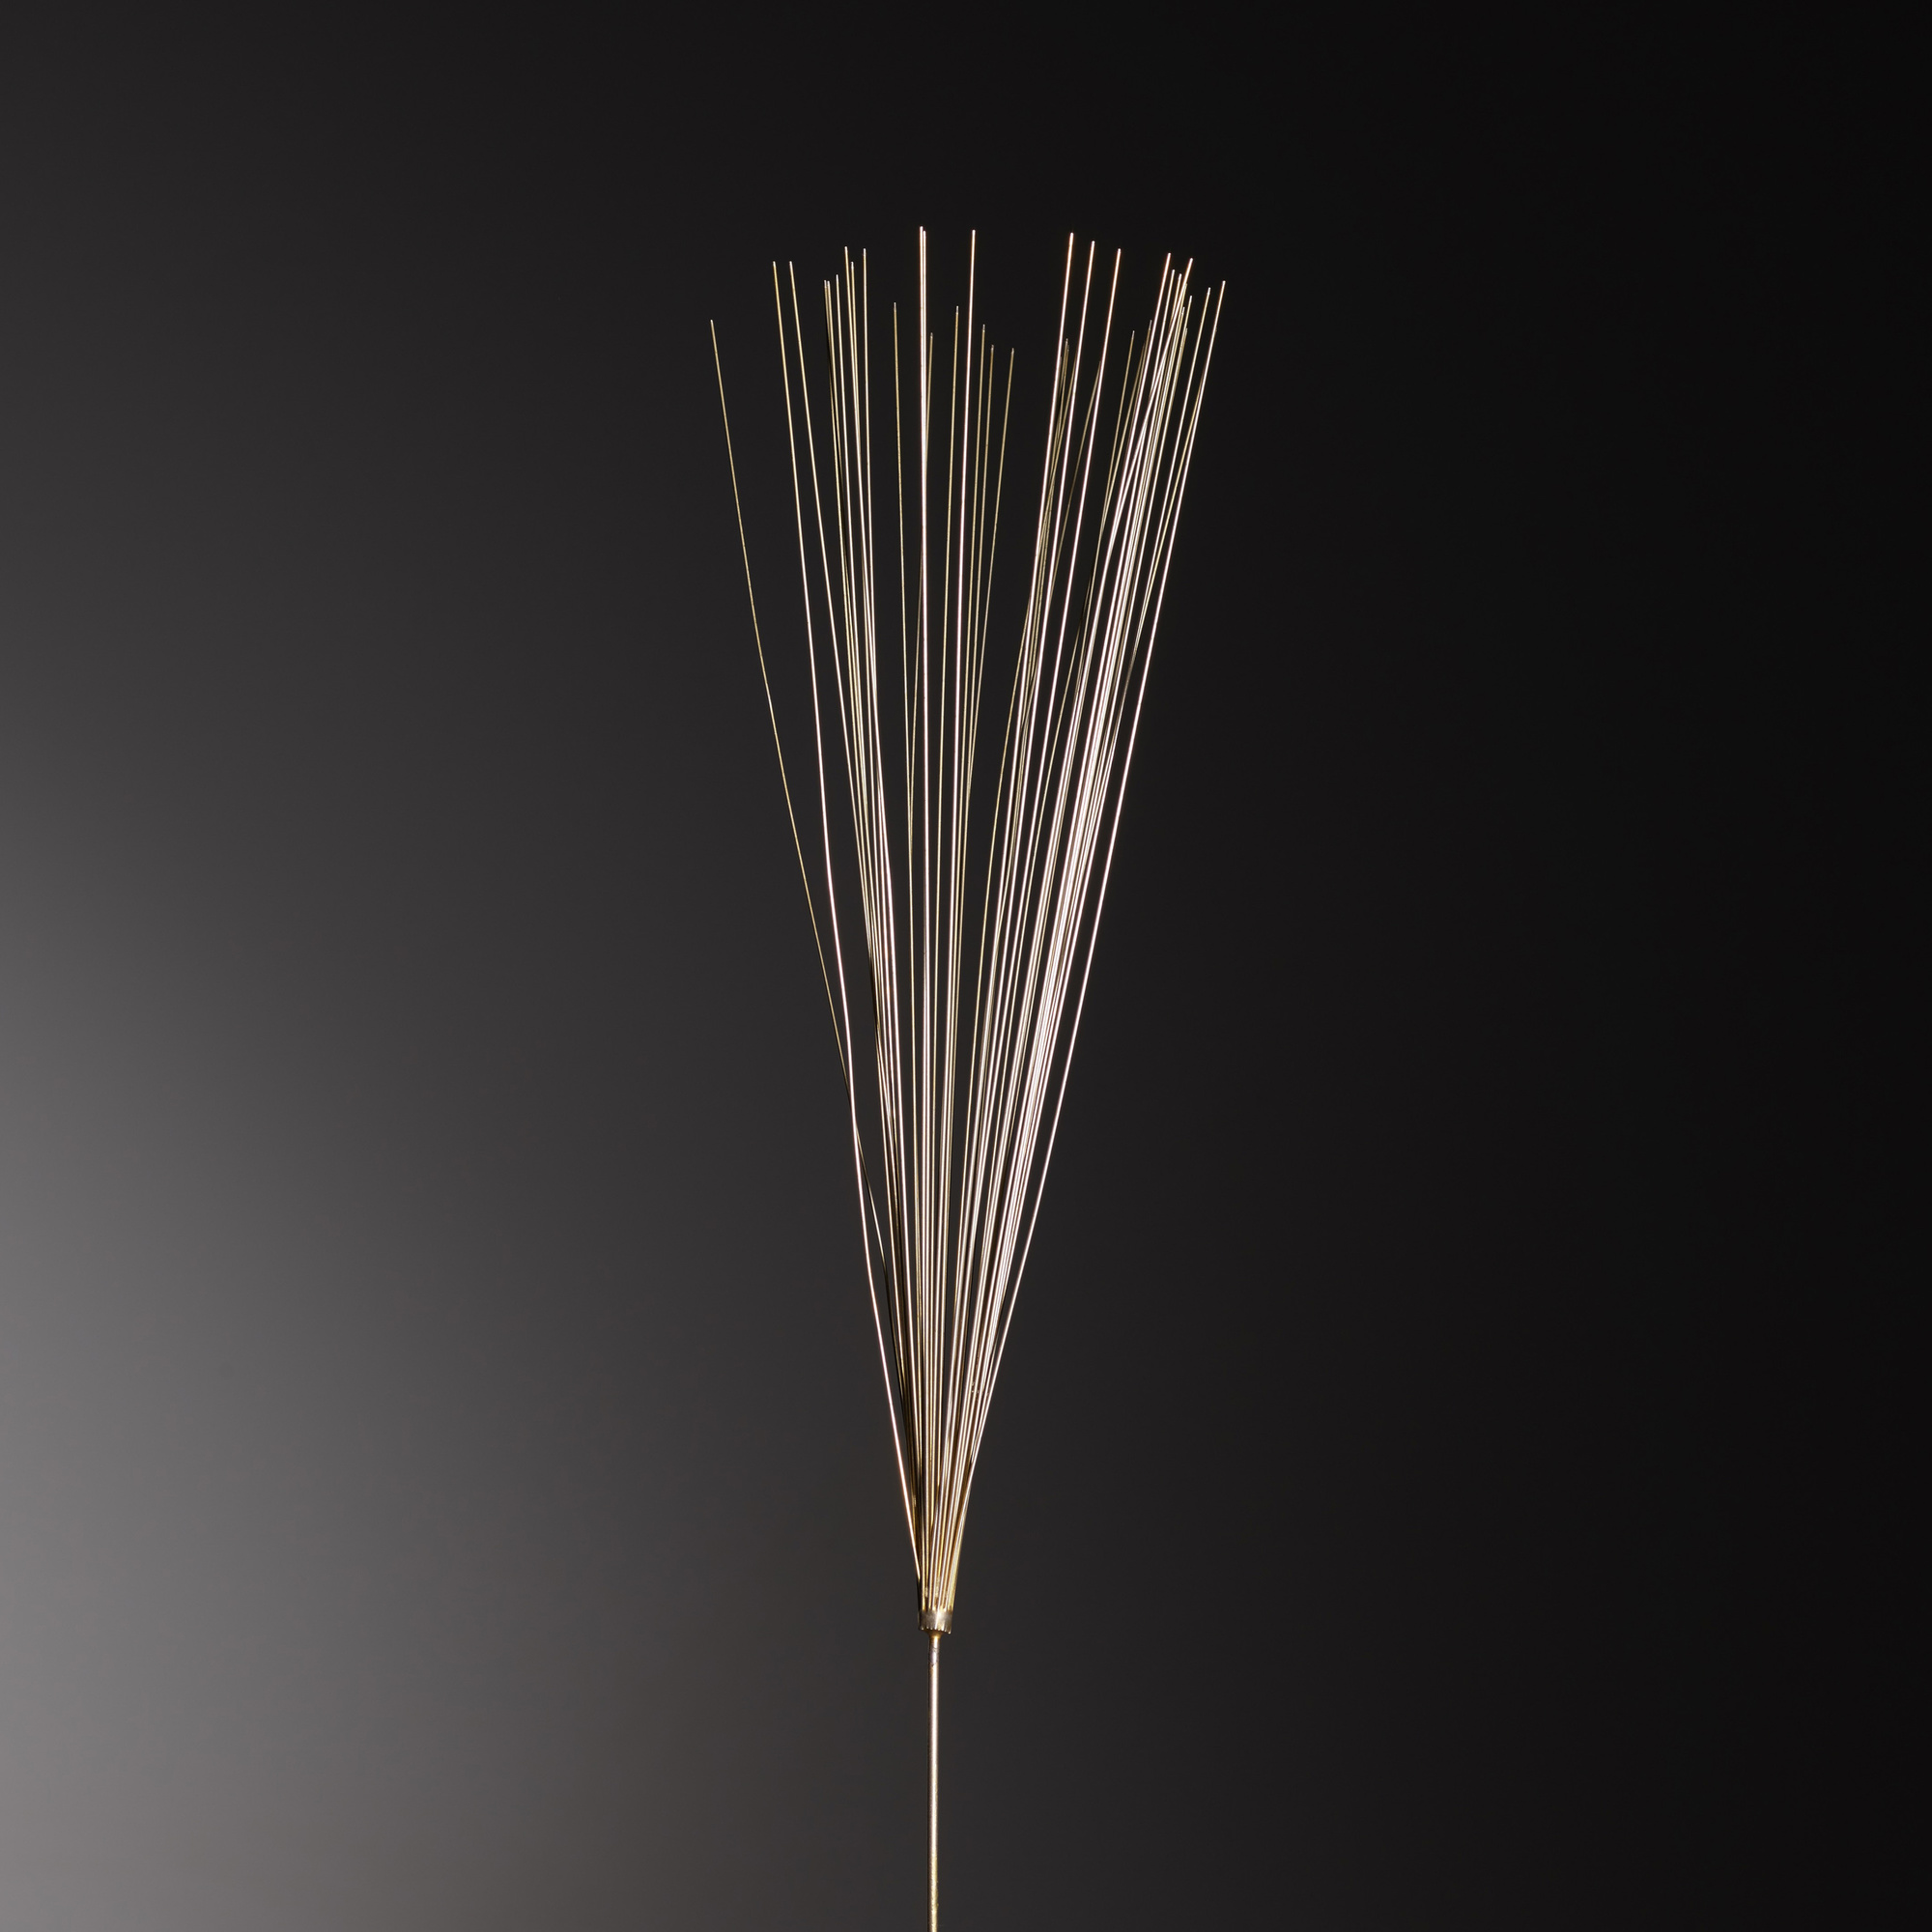 385: Harry Bertoia / Untitled (Dandelion Fragment) (2 of 2)